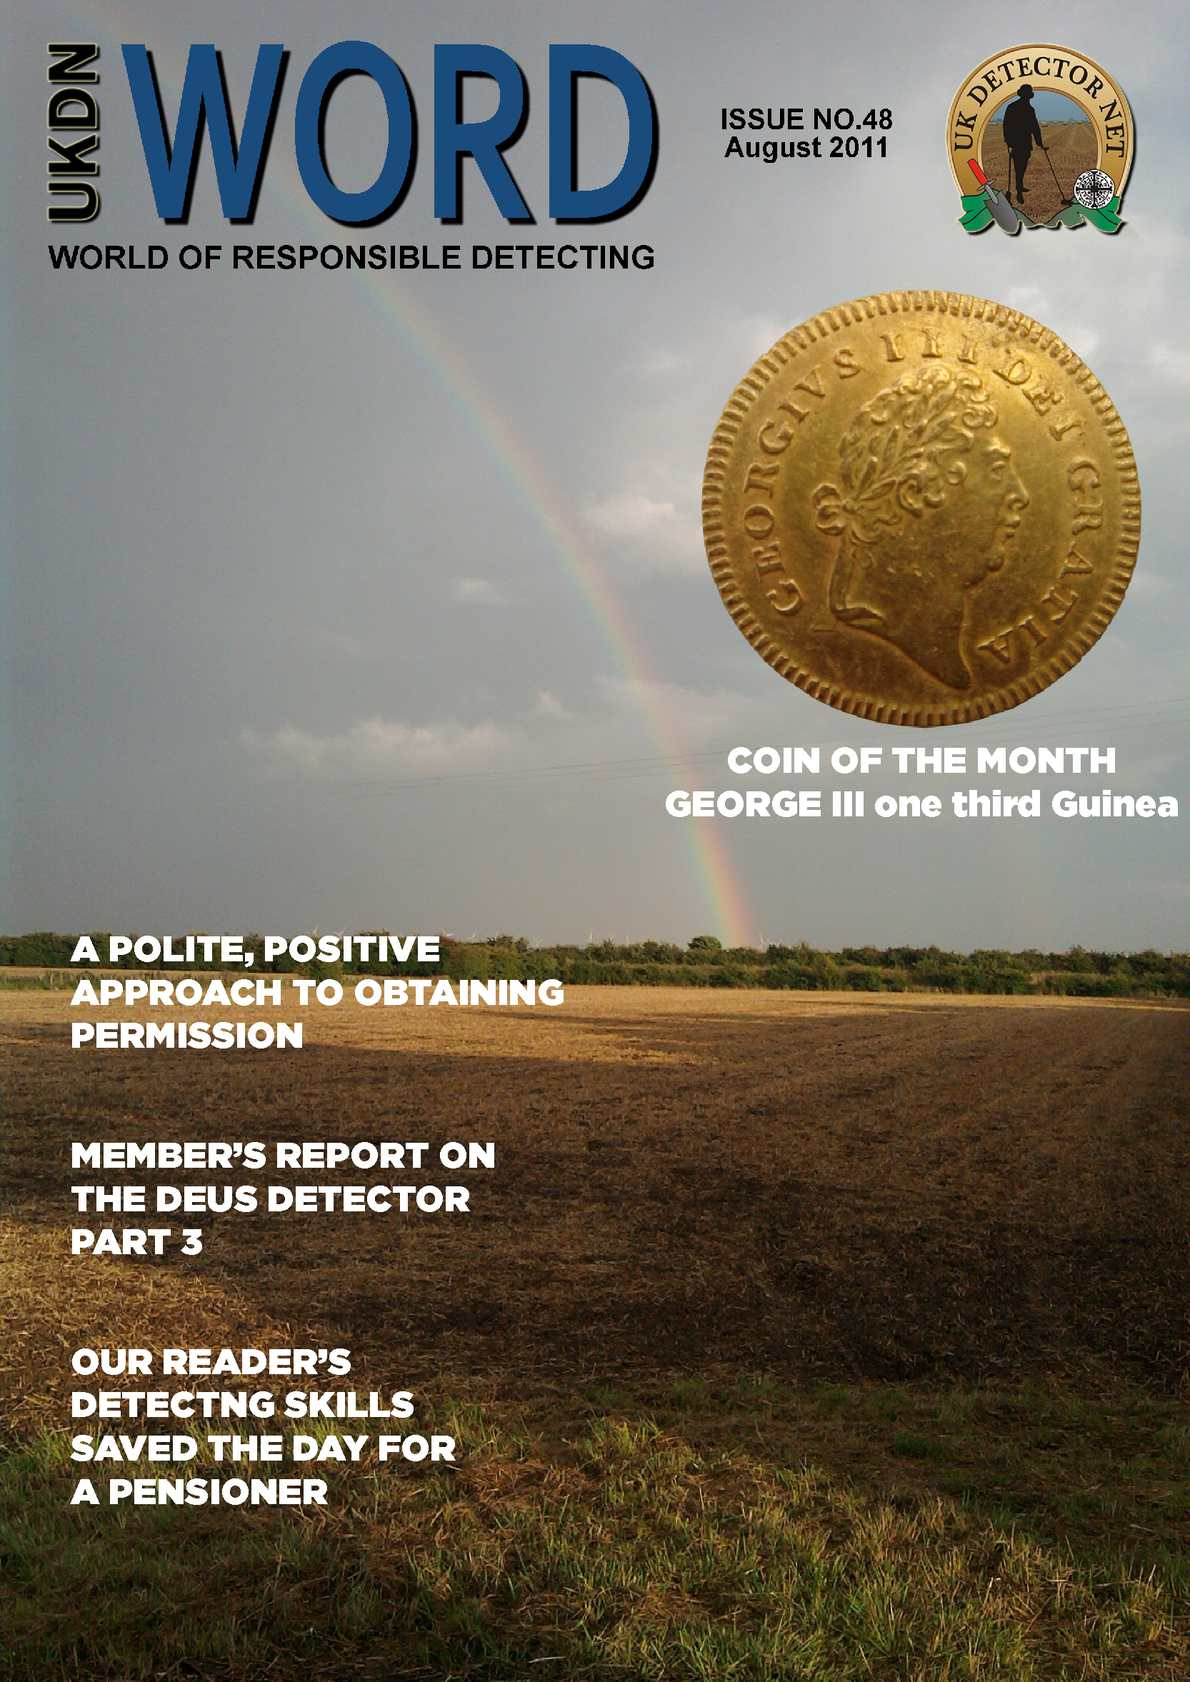 UKDN Word Issue 48 August 2011